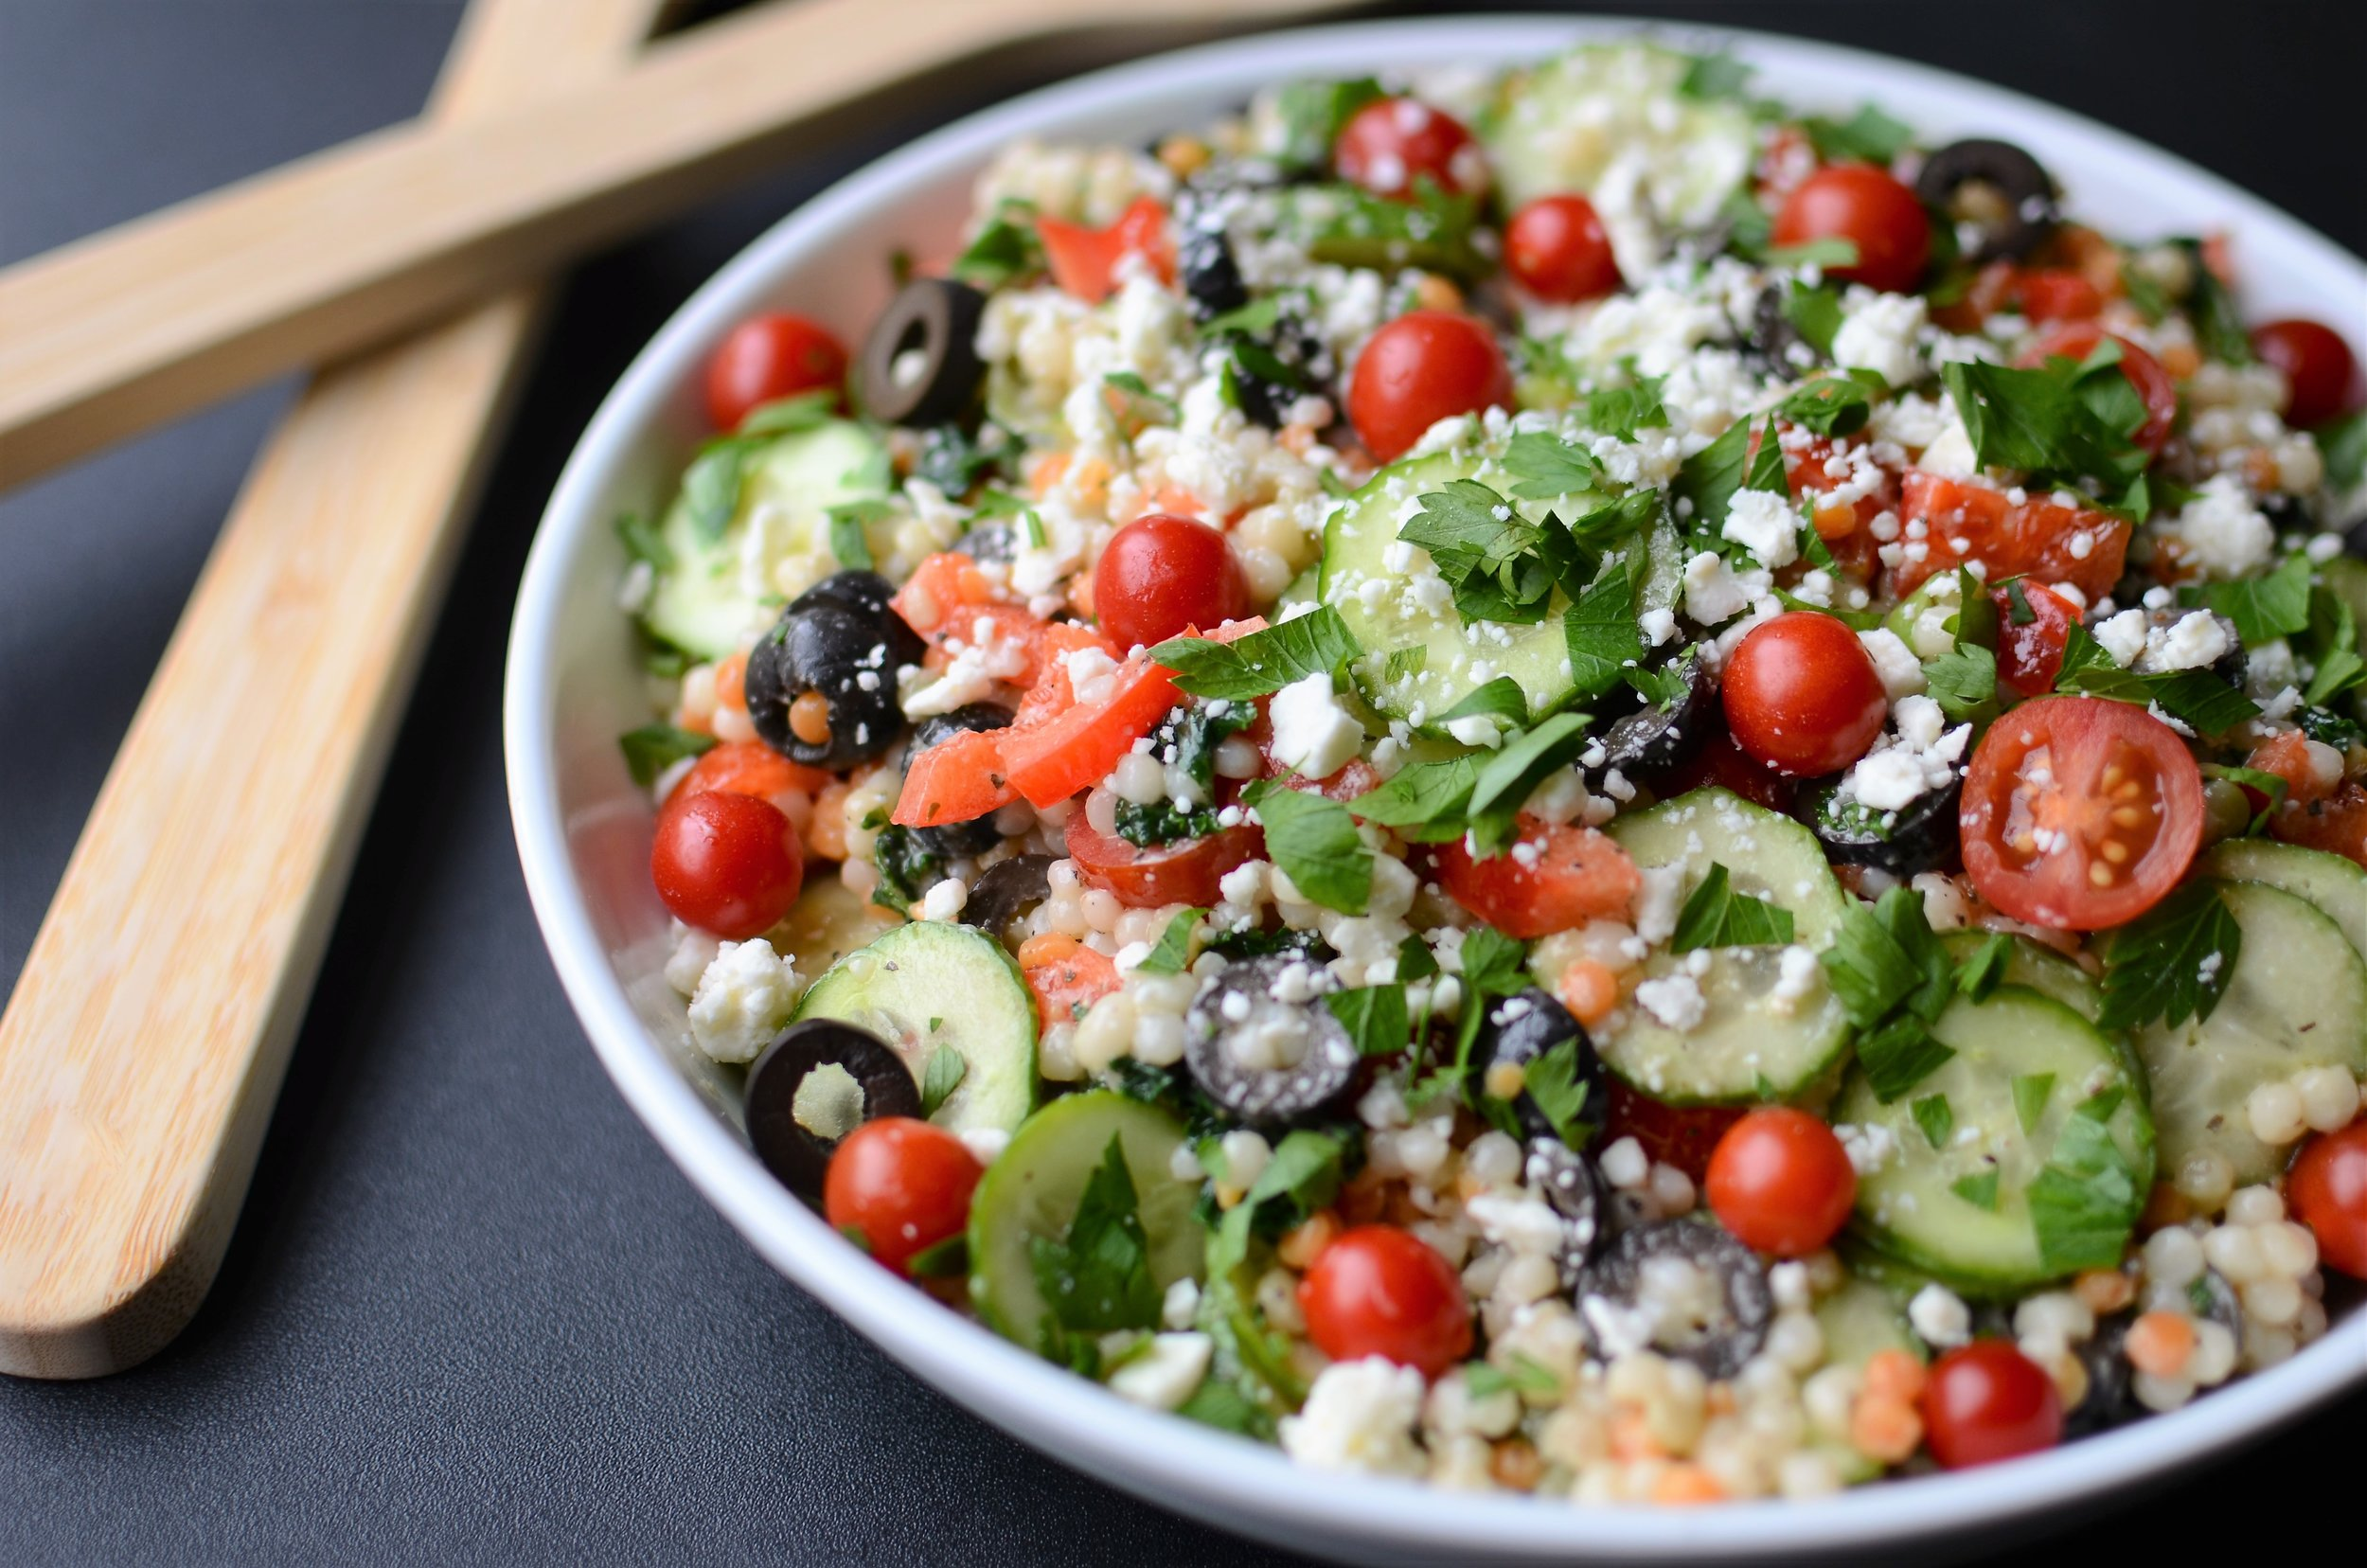 Greek Pearl Couscous Salad - ButterYum — greek Israeli couscous salad recipe. greek pearl couscous salad recipe. couscous salad recipe with cucumber, feta, and olives. couscous with creamy greek salad dressing.